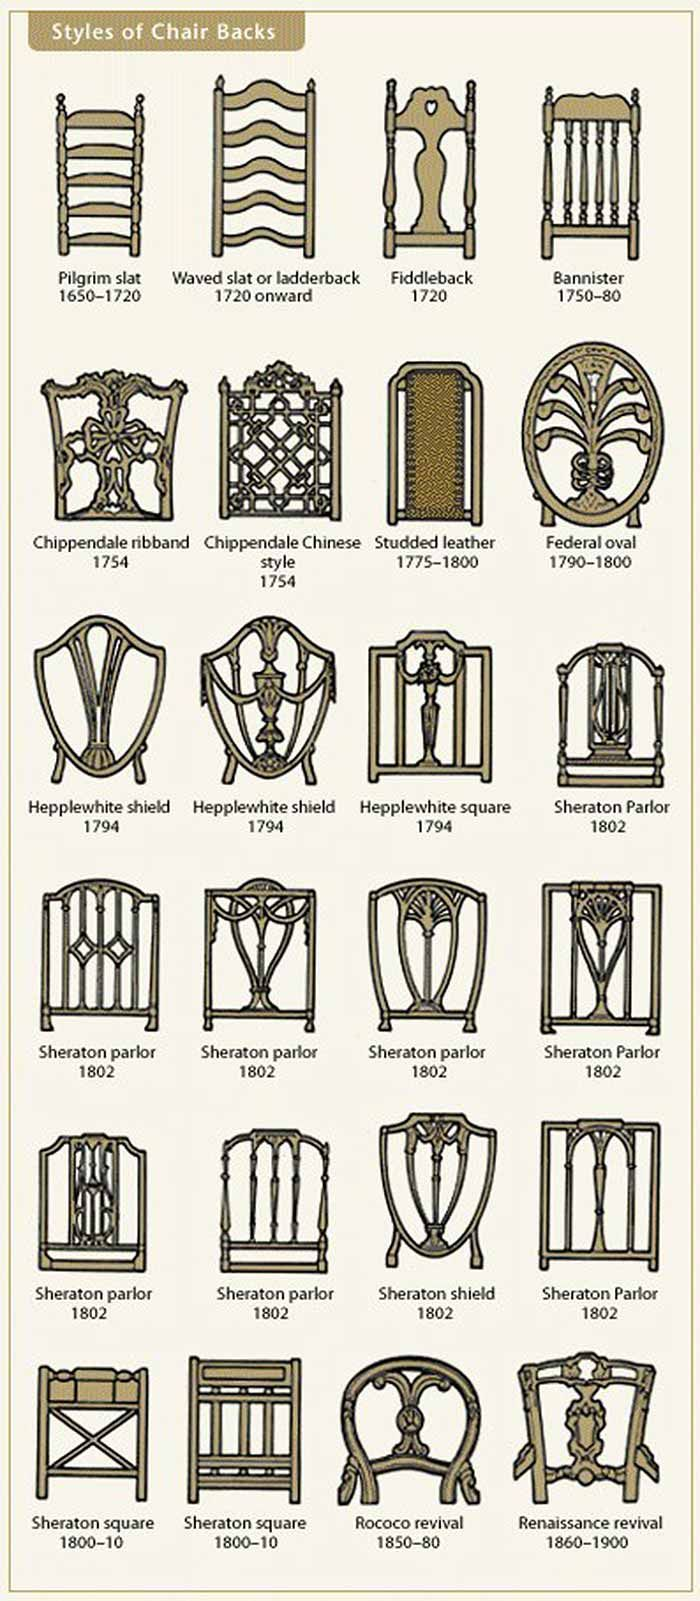 Antique chair styles identification - Find This Pin And More On Design Furniture